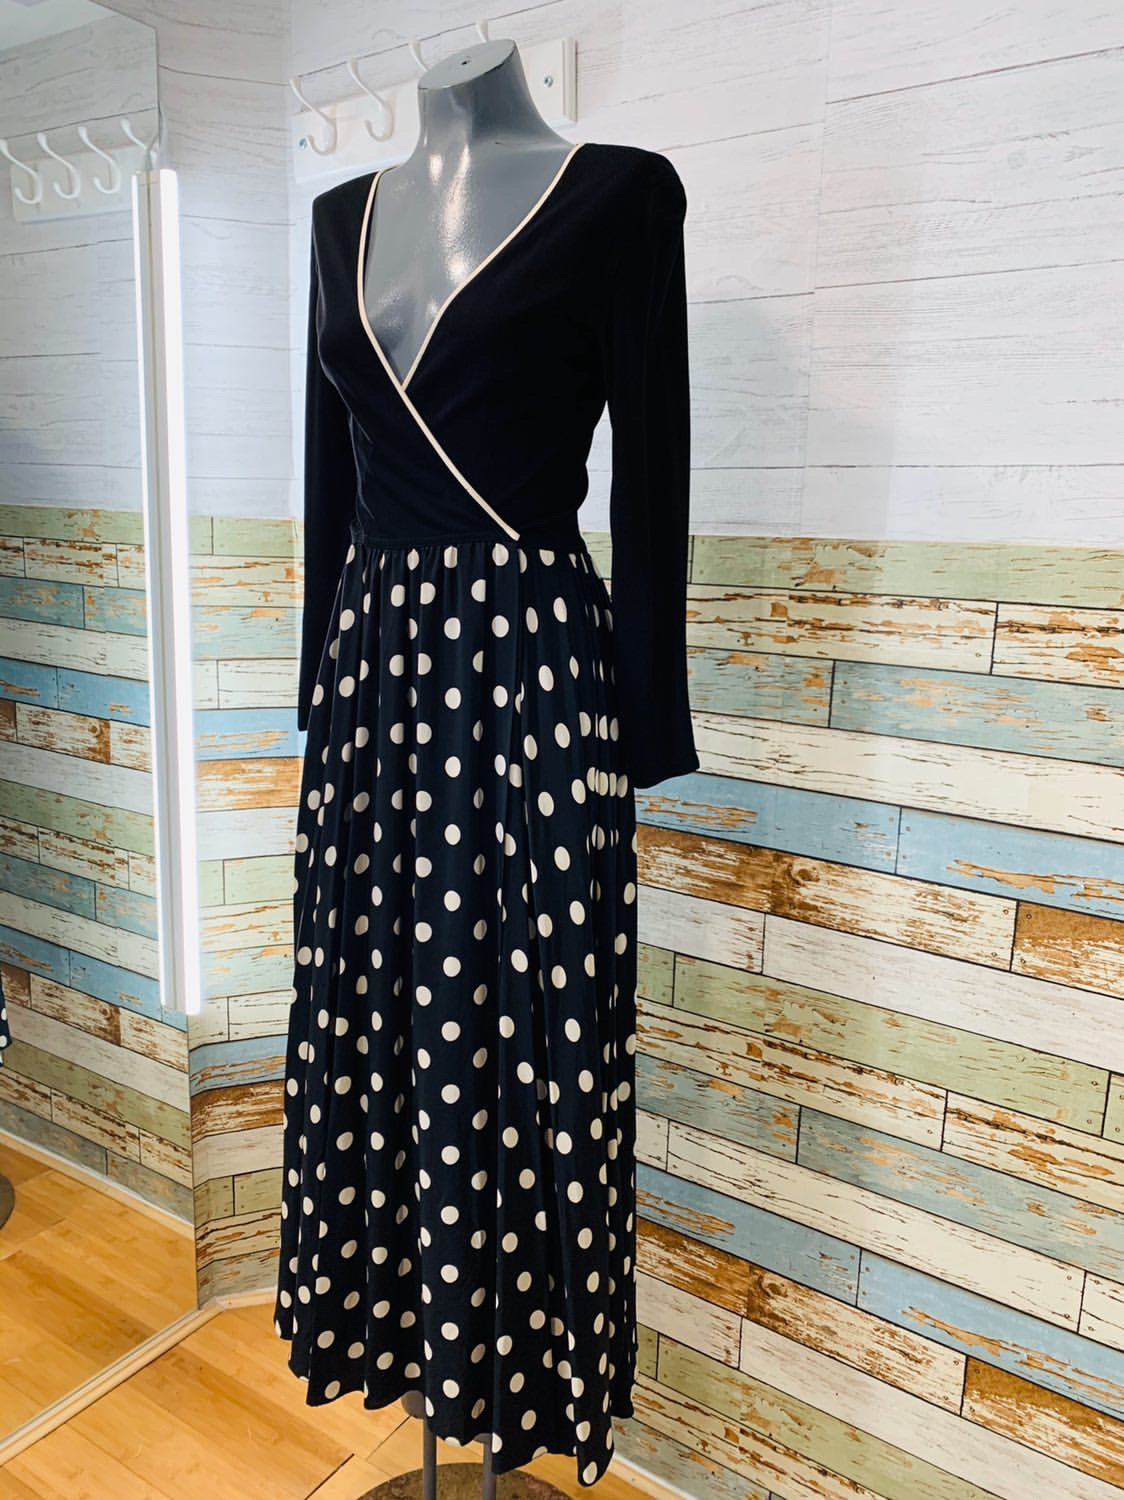 90's Black and WhitePolka Dot Maxi Dress - Hamlets Vintage